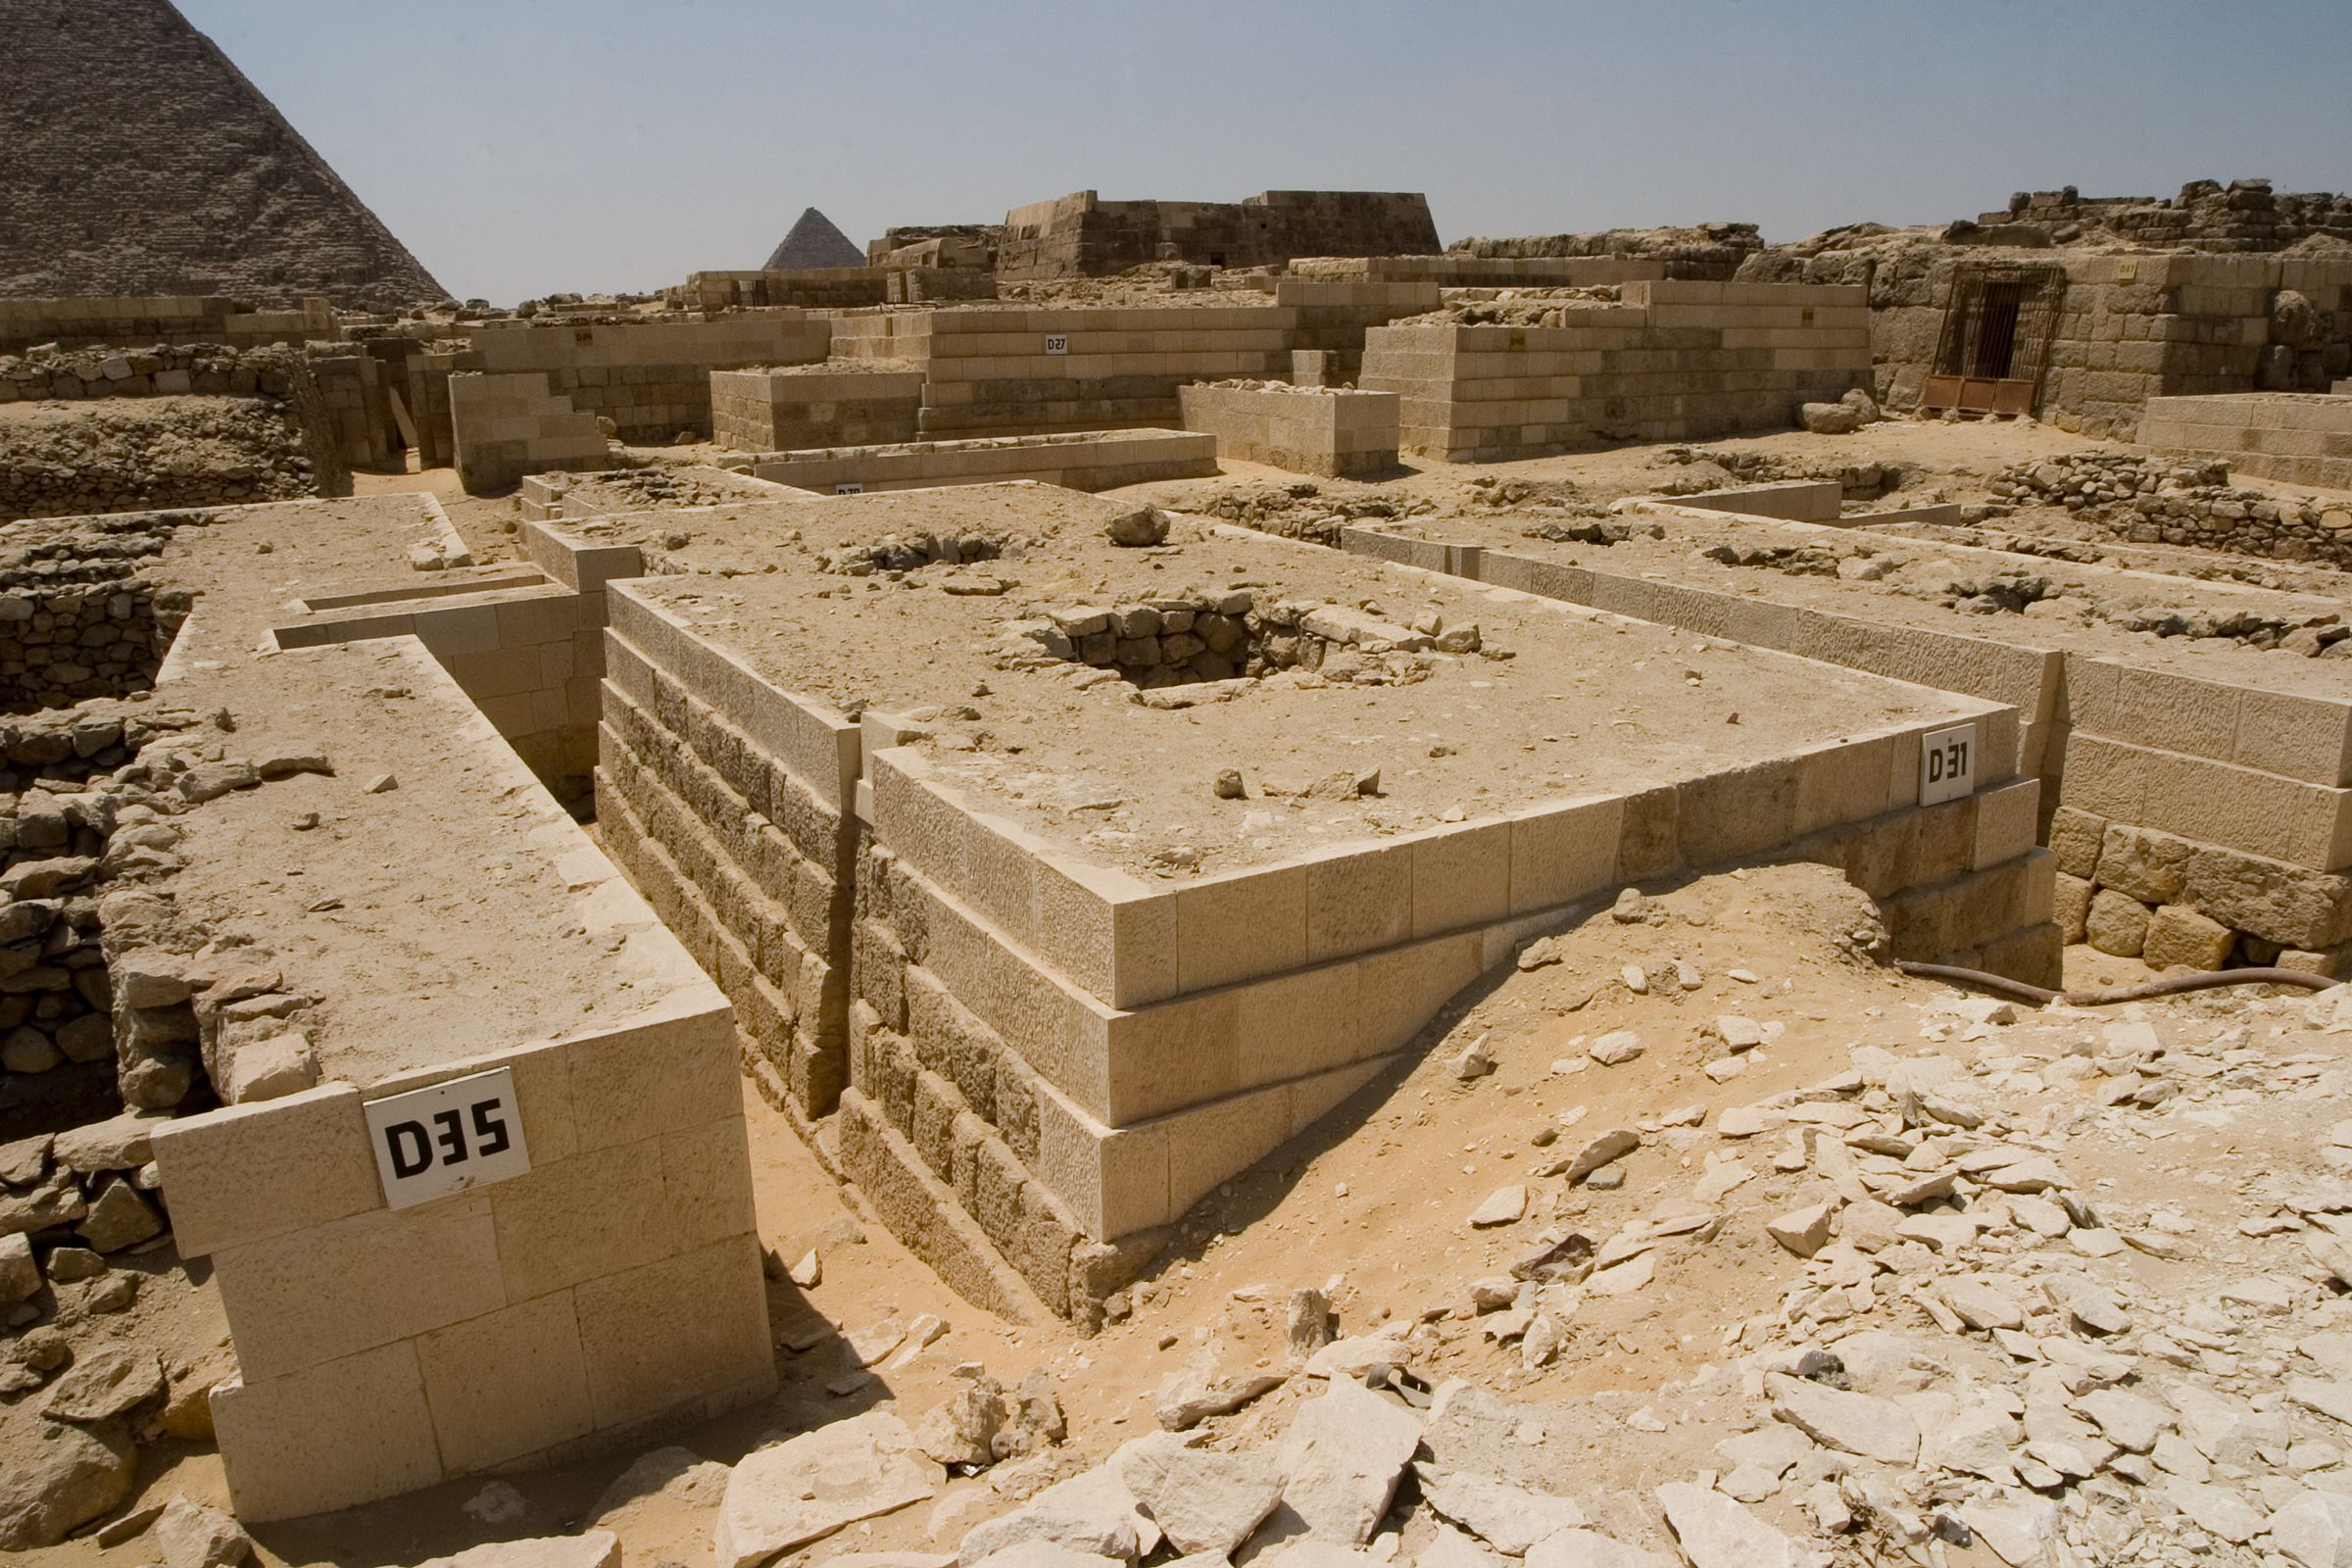 Western Cemetery: Site: Giza; View: D 31, D 35